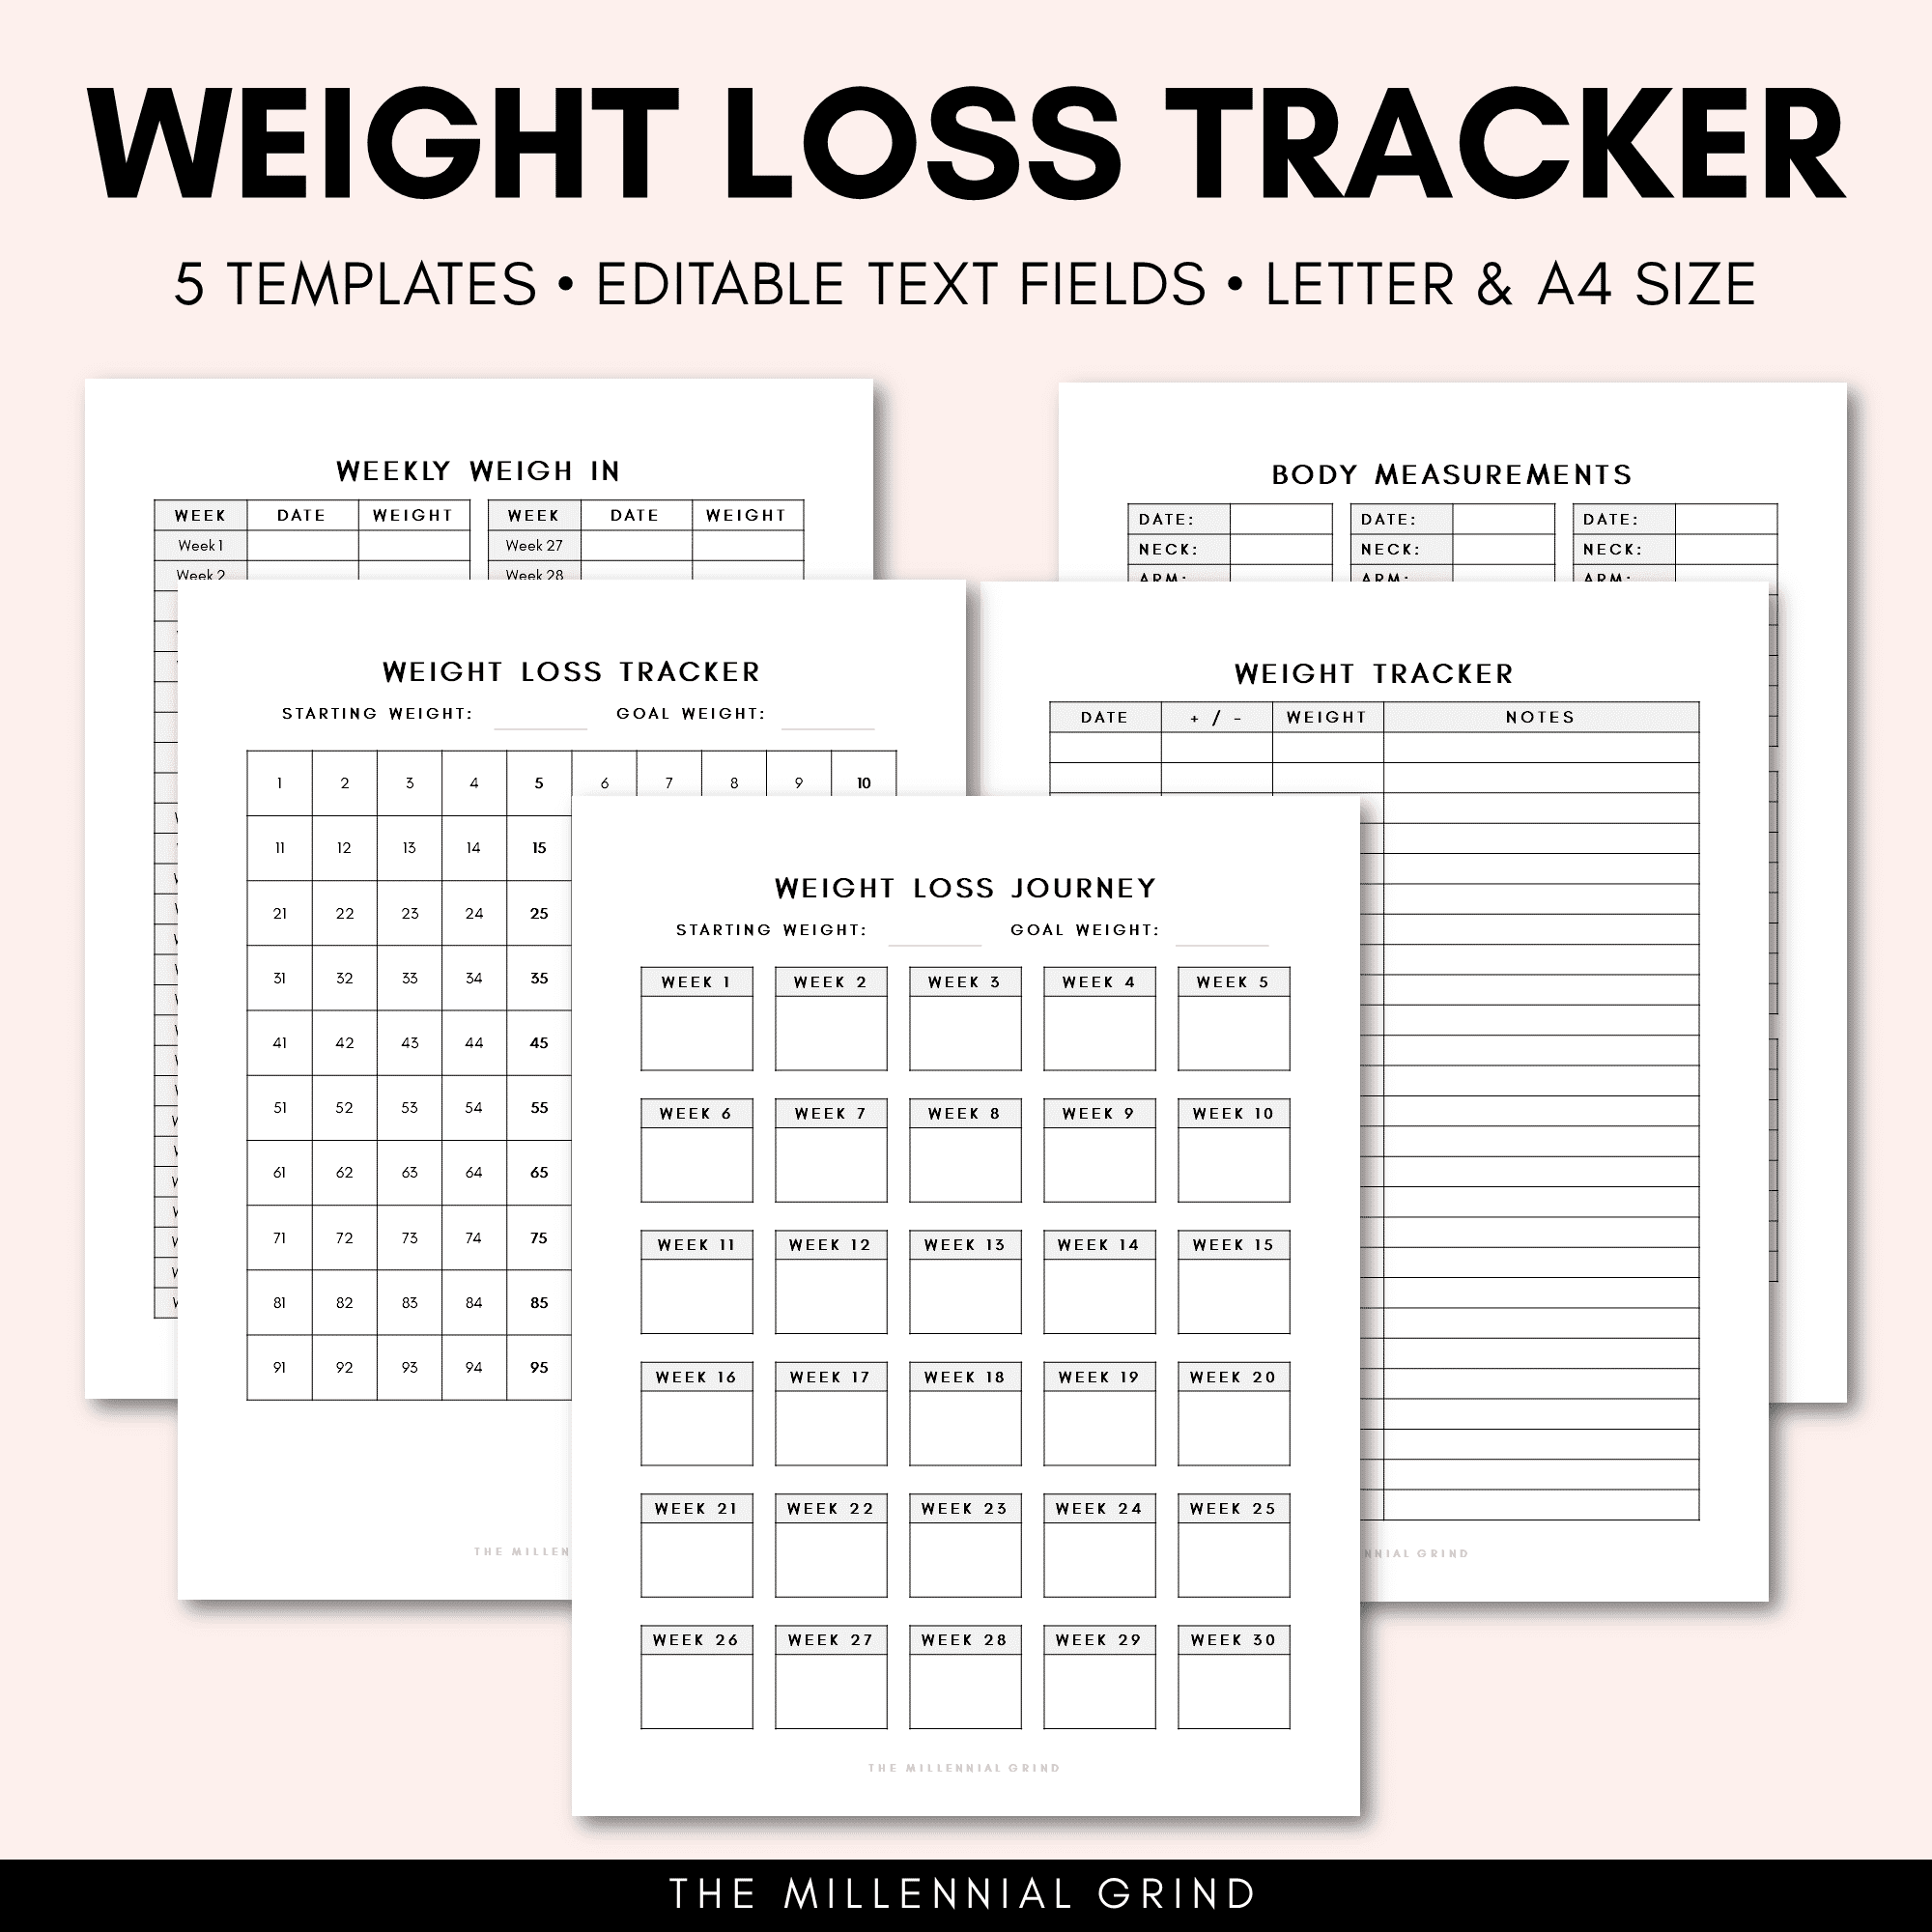 Weight Loss Tracker